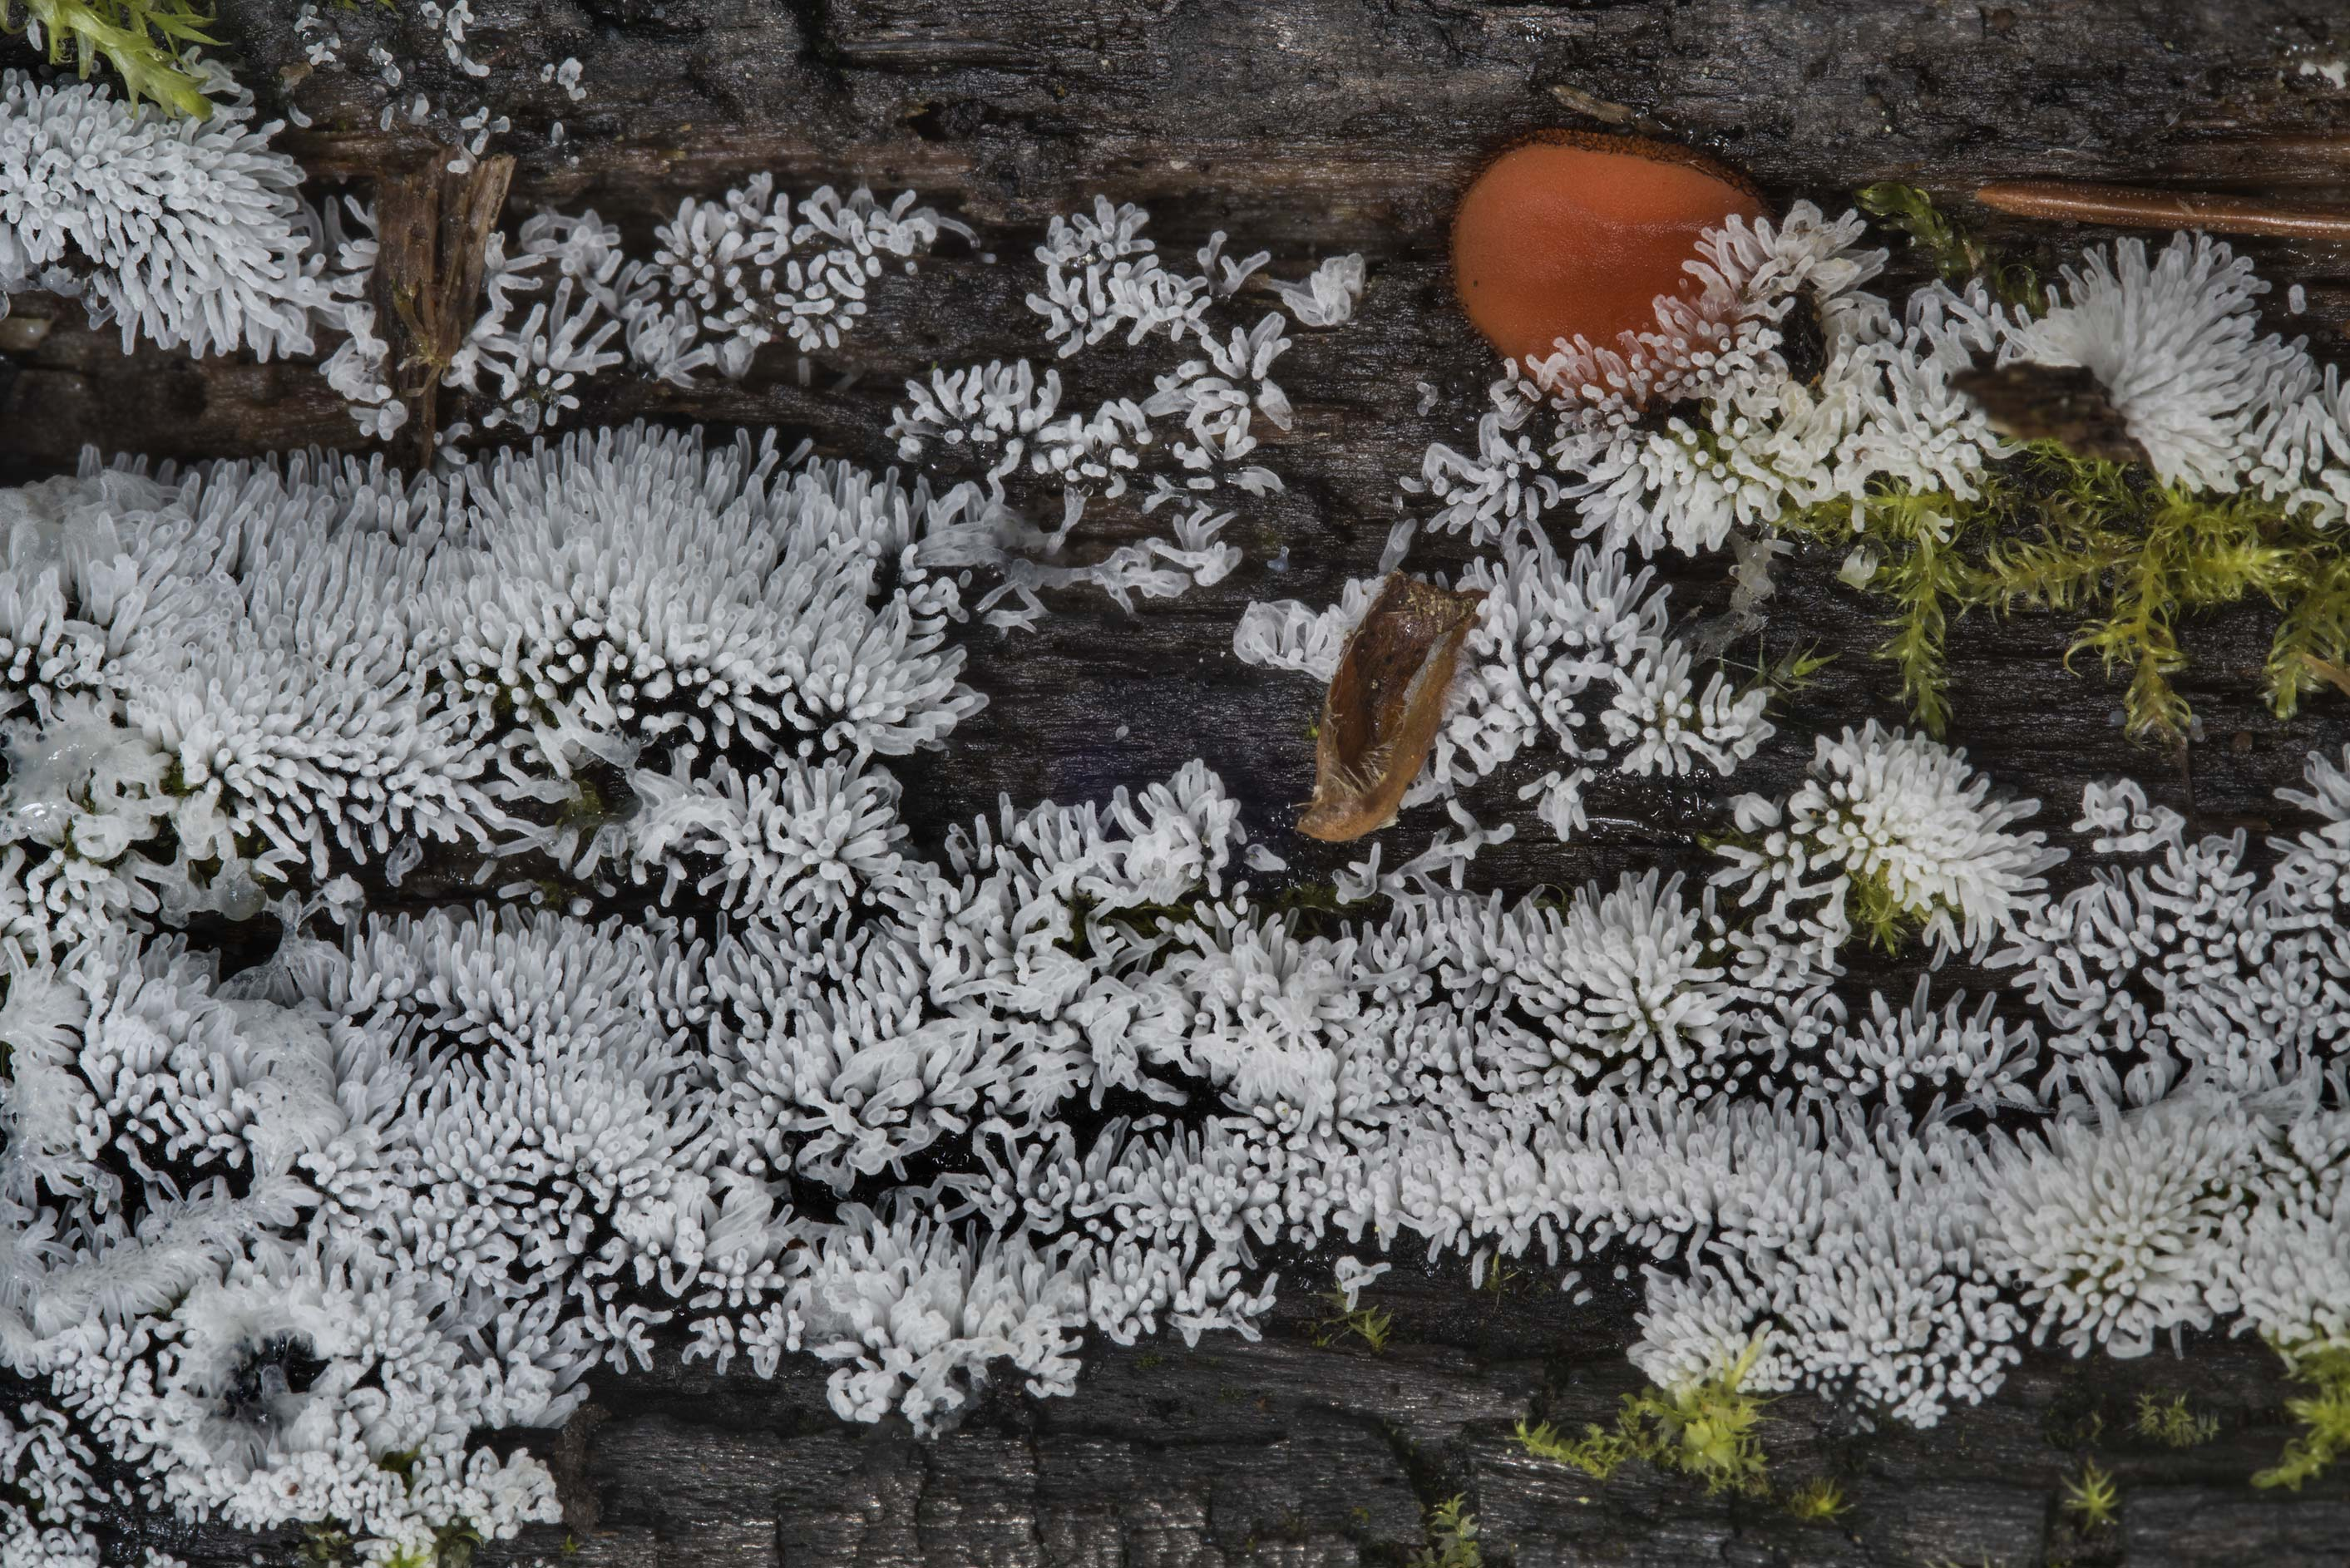 Coral slime mold (Ceratiomyxa fruticulosa) near...north from St.Petersburg. Russia